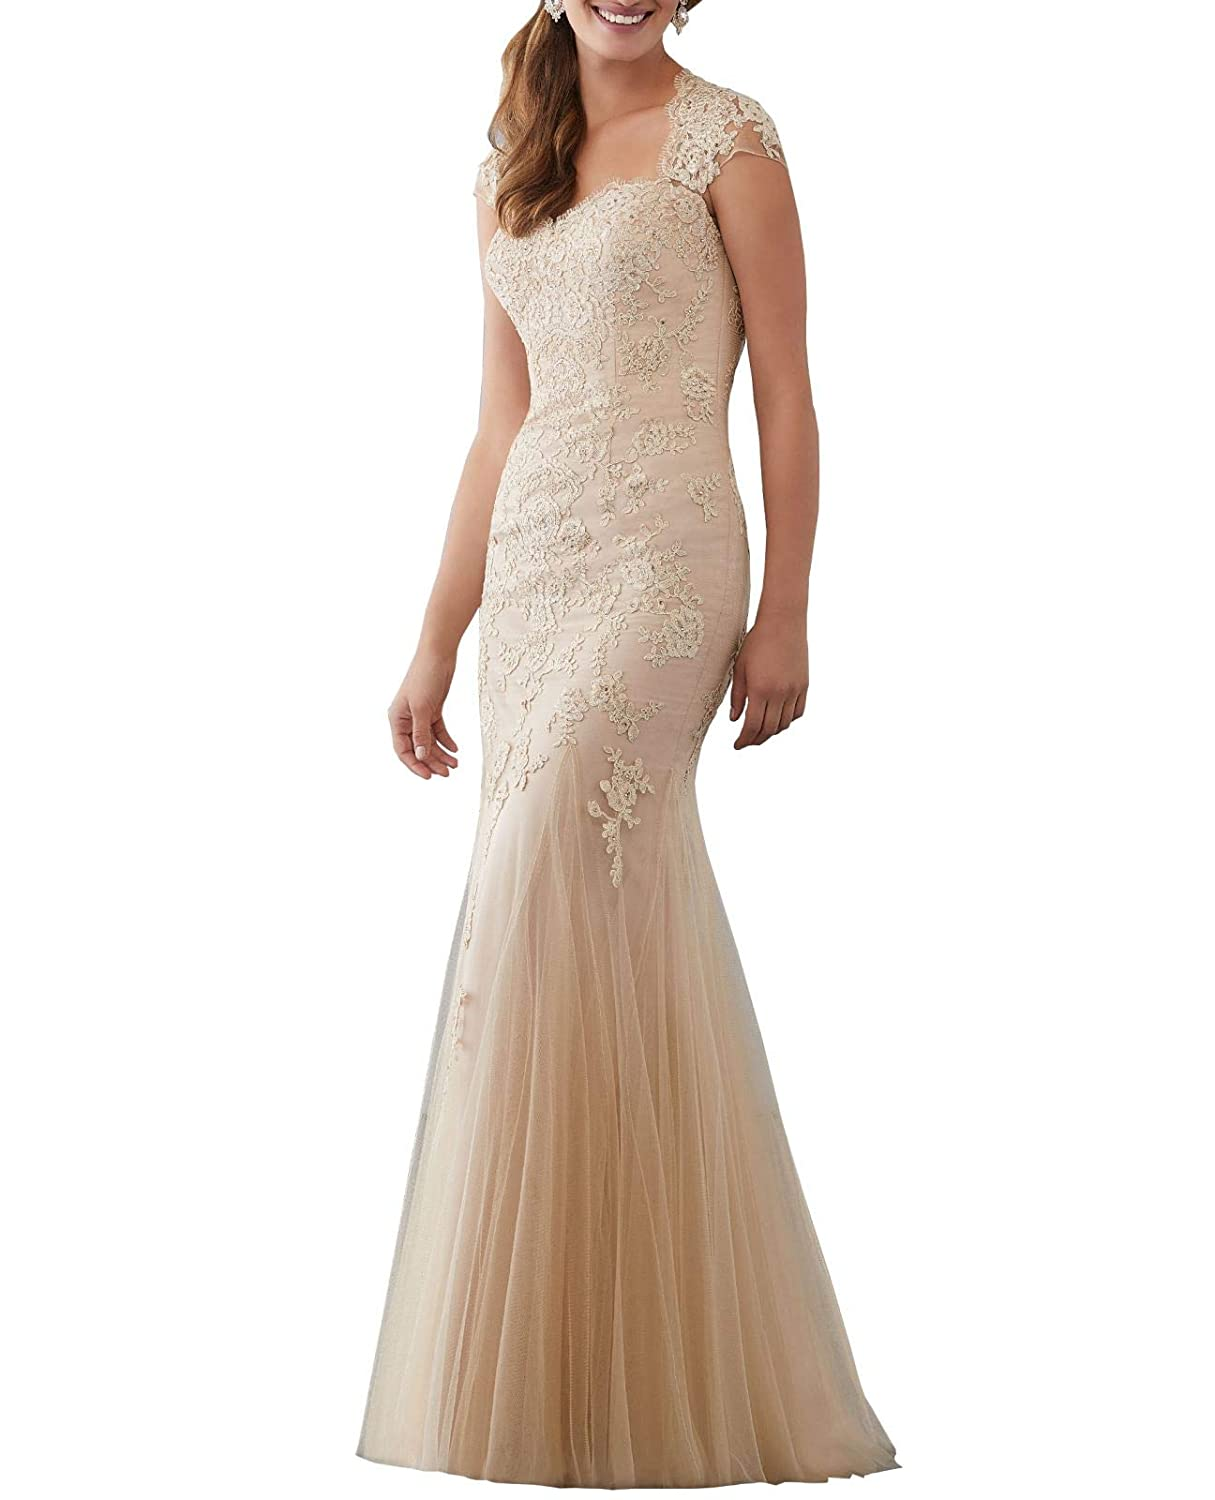 Champagne Aishanglina Caps Shoulder Embroidered Appliques Beaded Evening Gown Floor Length Party Tulle Dress